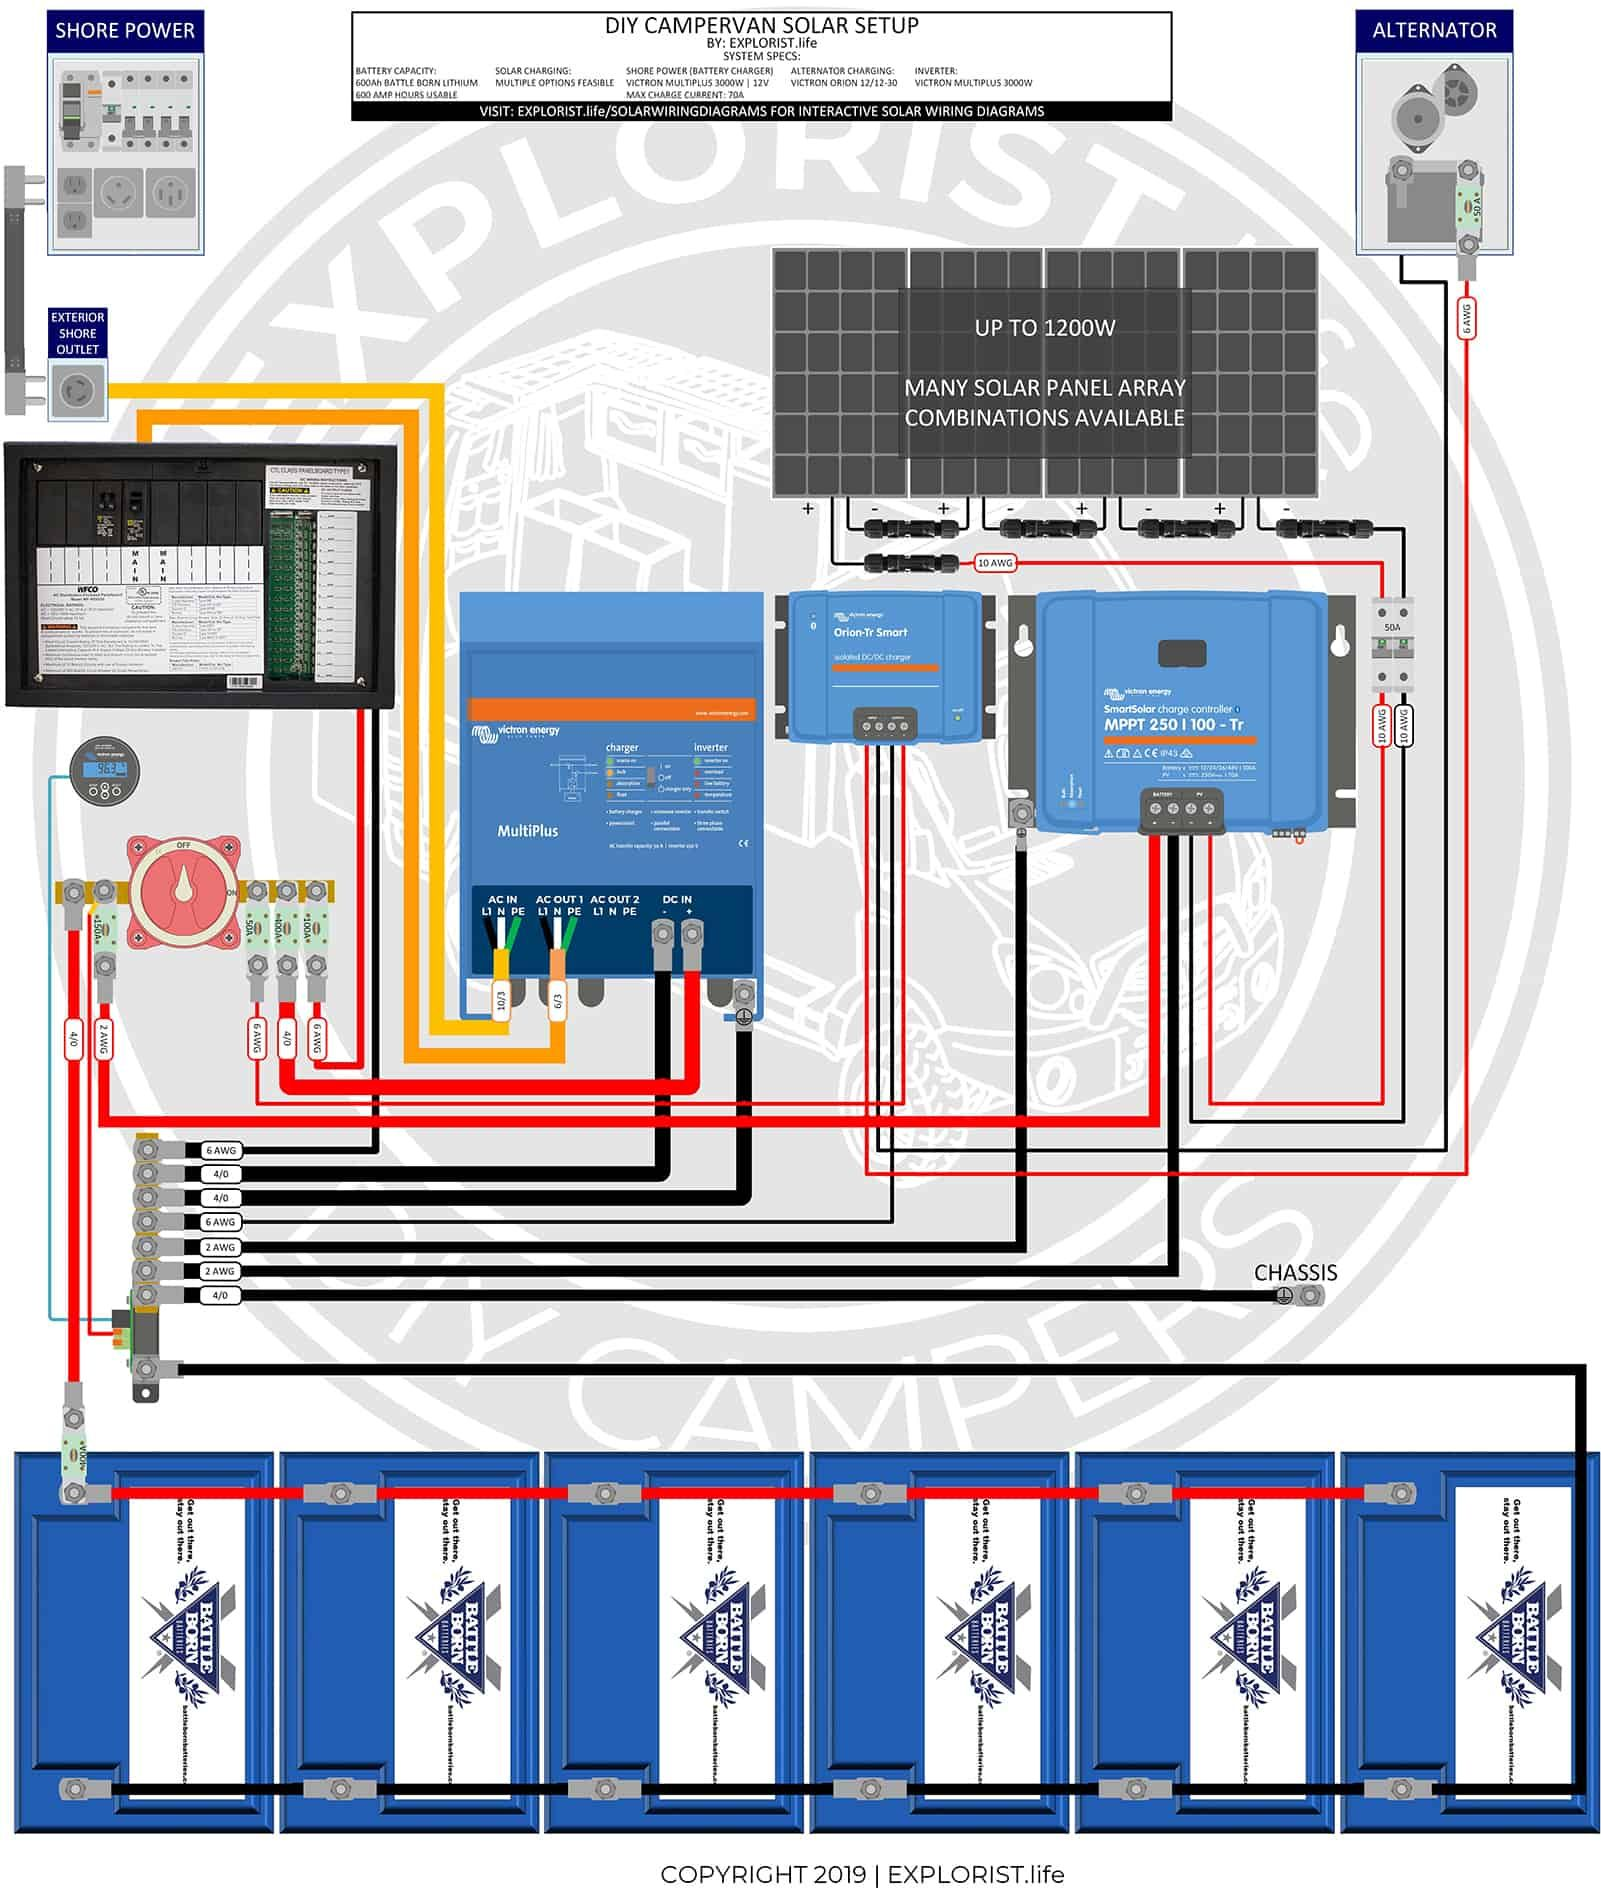 800w 24v Grid Tie System Kit 8100w Solar Panel With 1200w Waterproof Inverter Solar Panels Solar System Kit Solar